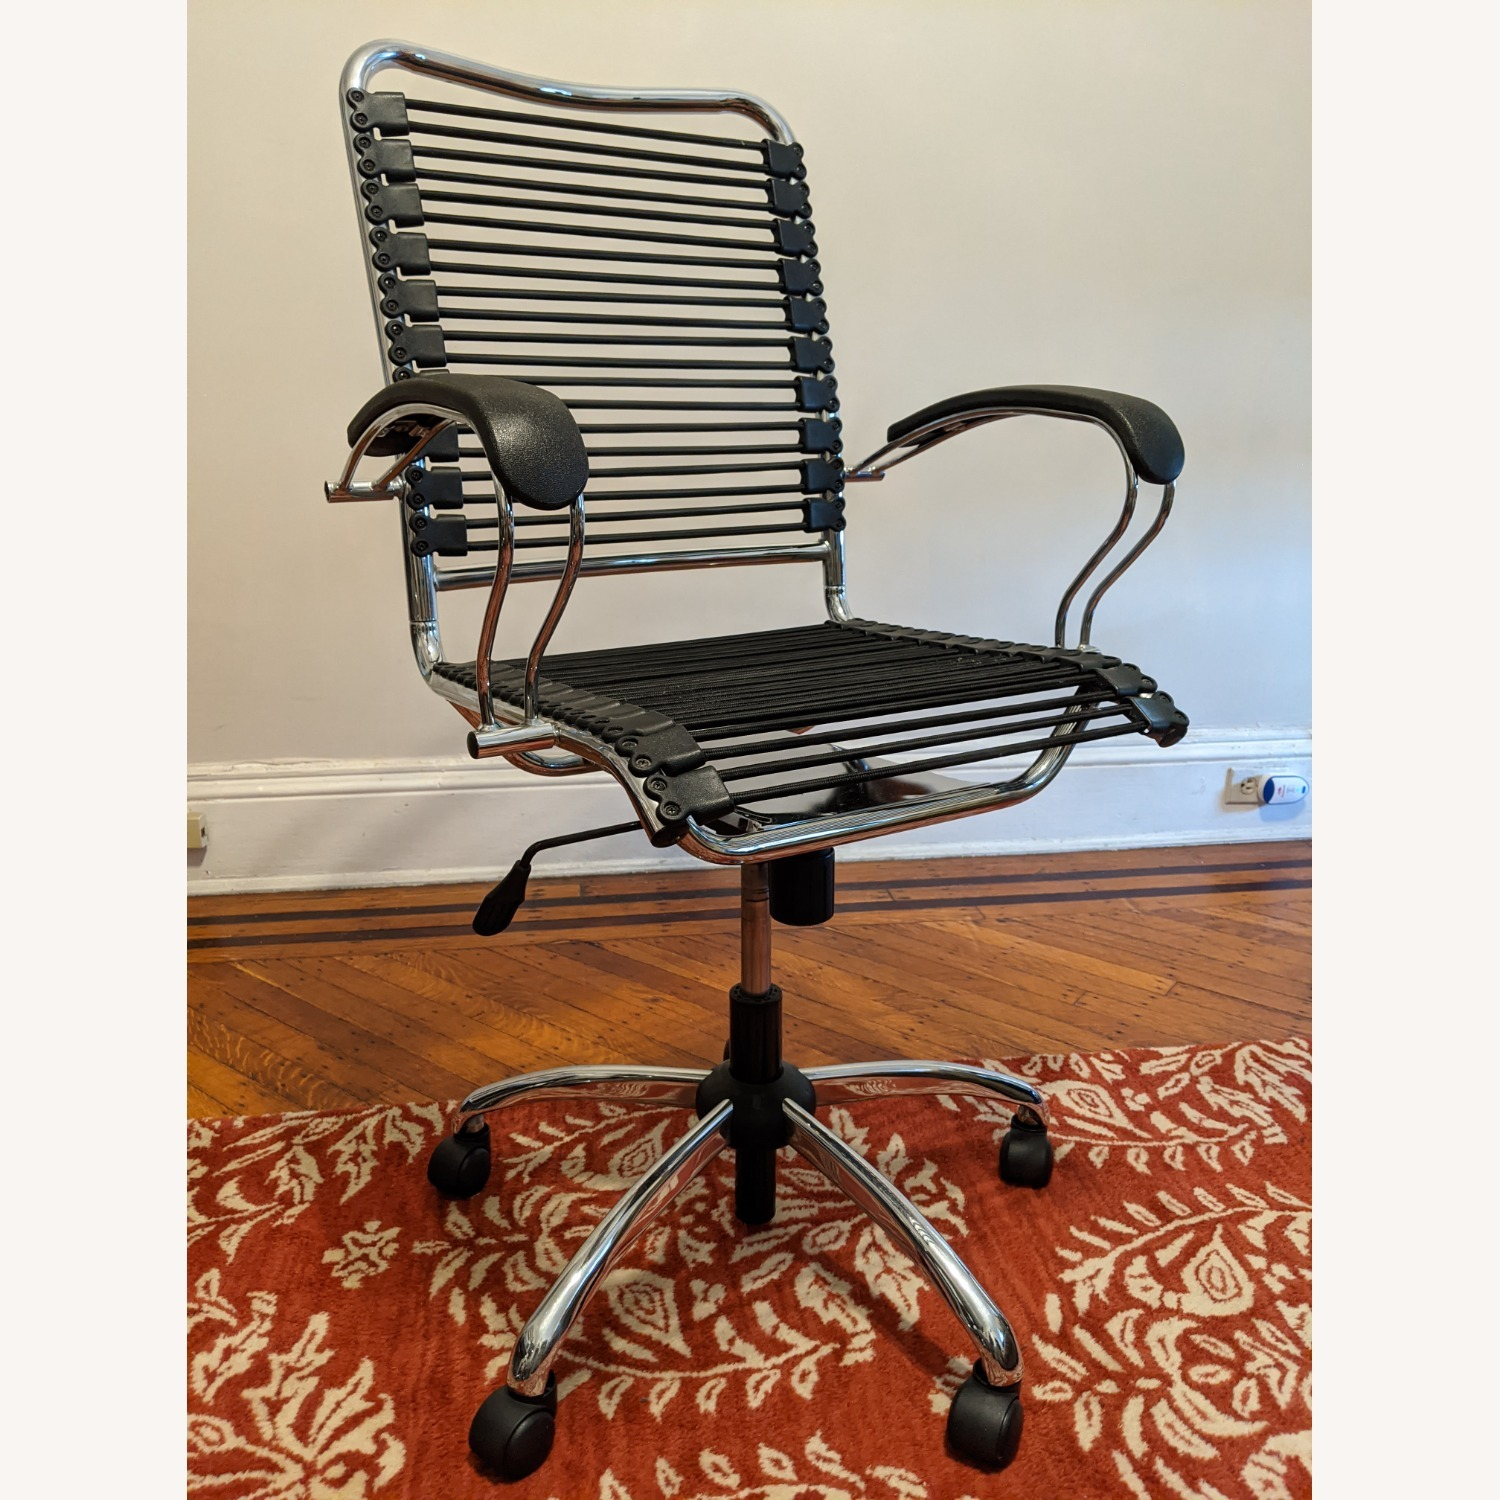 Modern Bungee Desk Chairs with Chrome Accents - image-1